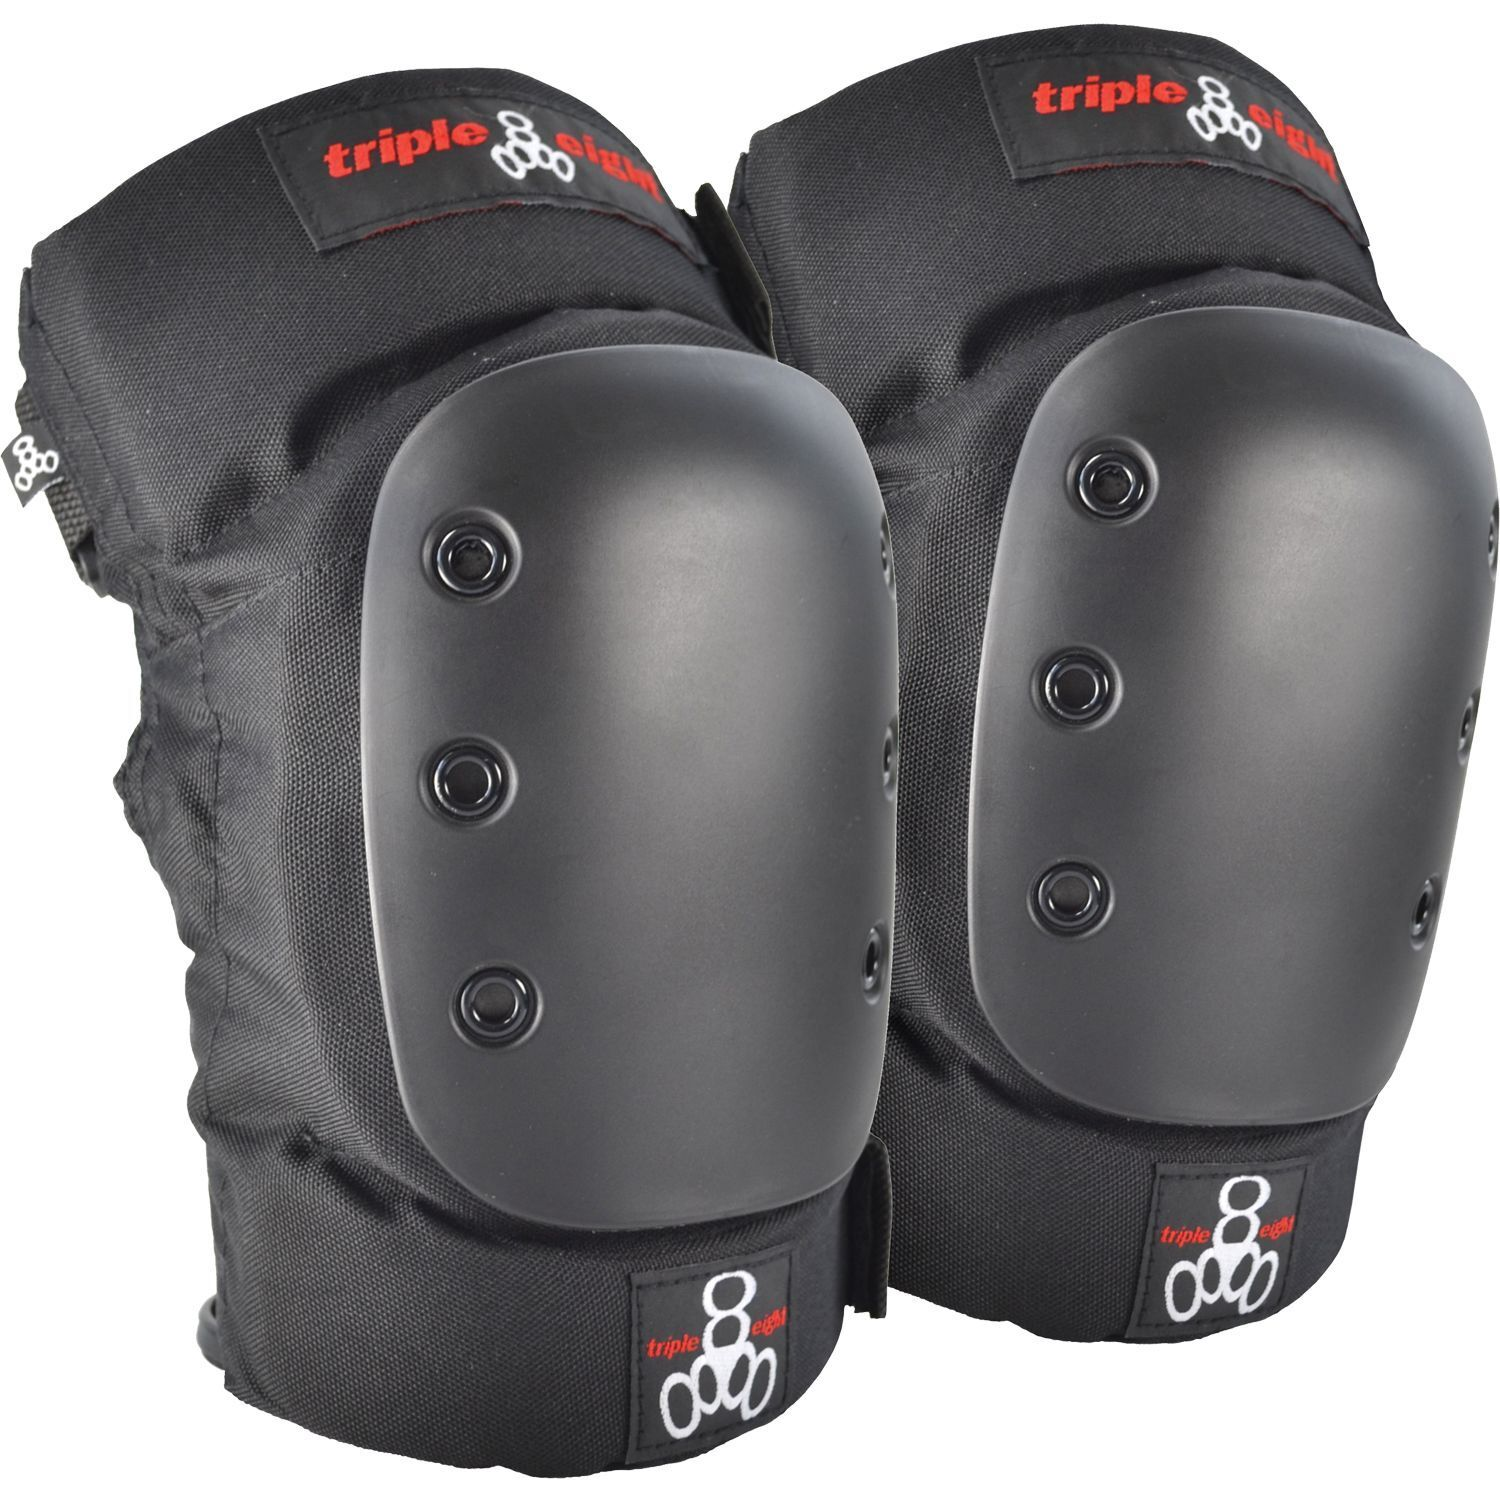 Triple 8 Kp 22 Knee Pad M